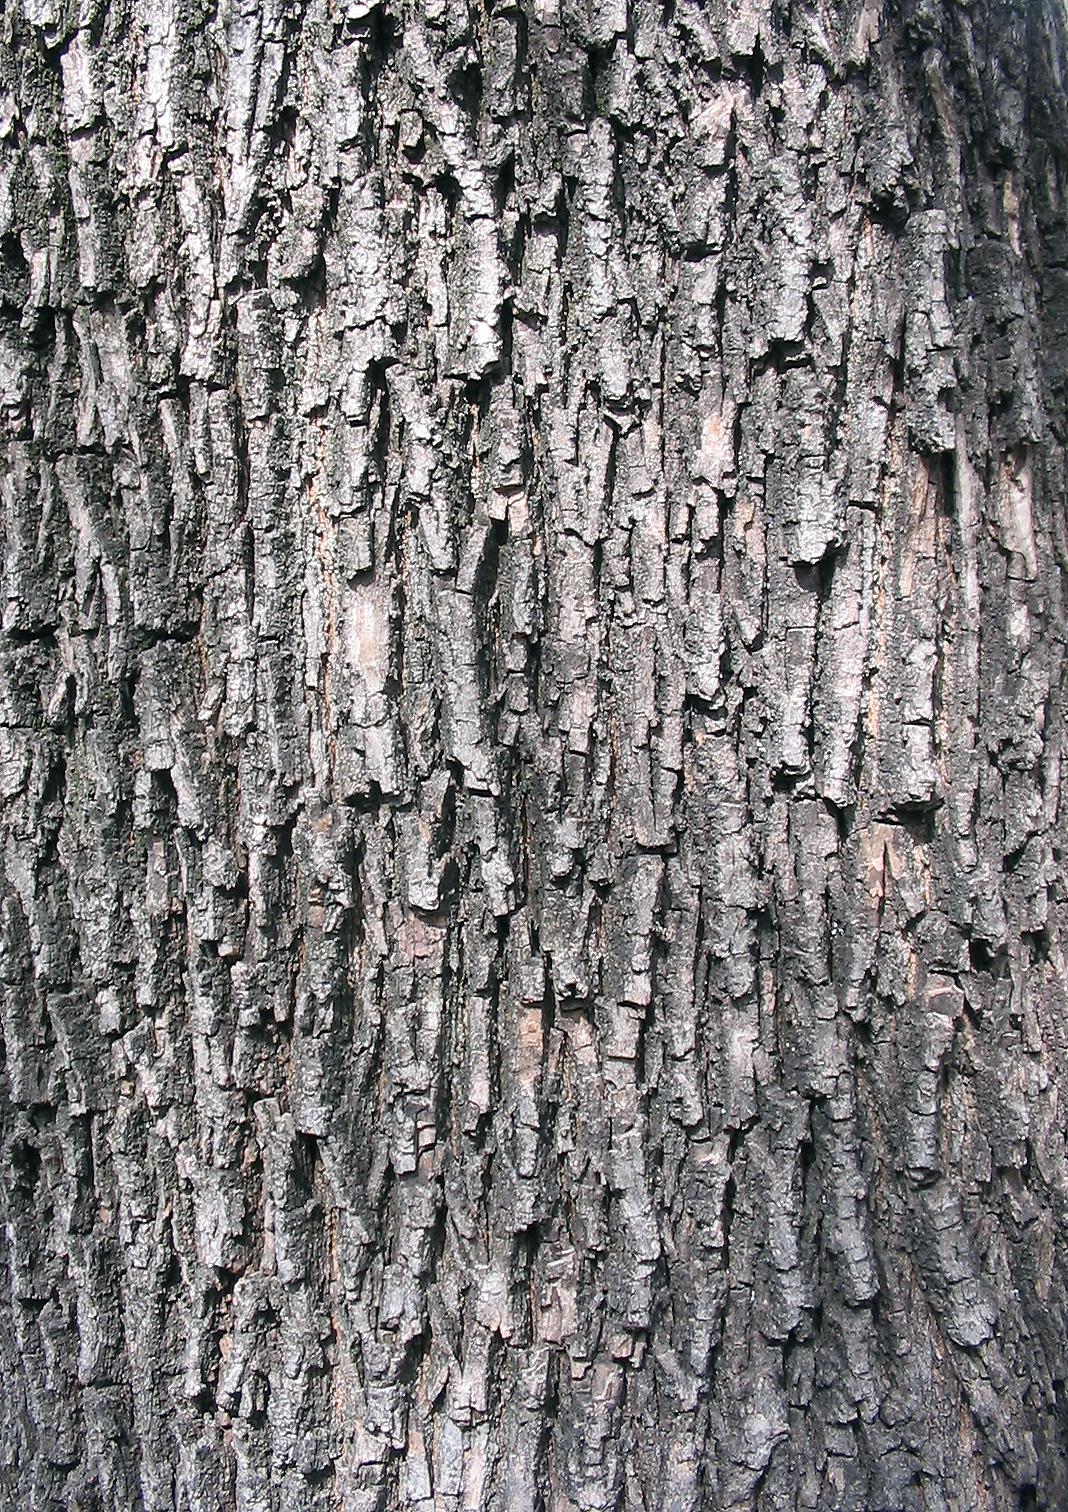 File:Acer campestre textura del tronco.jpg - Wikimedia Commons